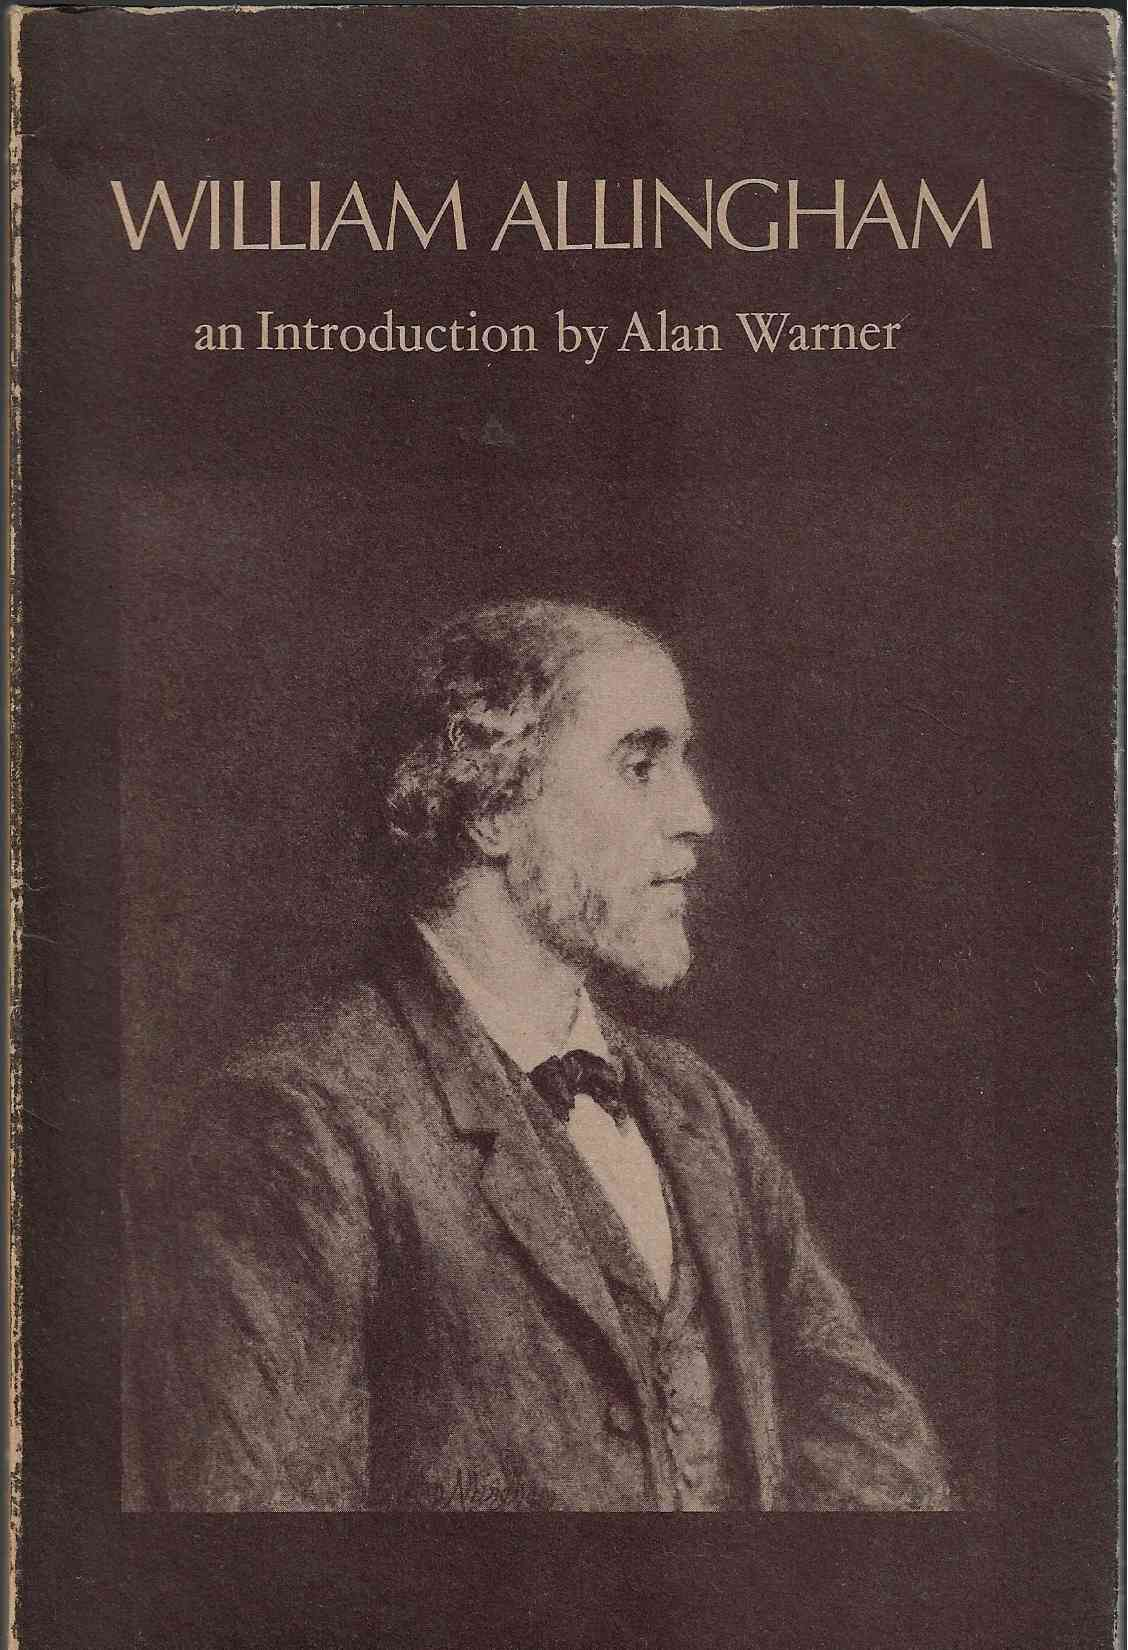 Image for William Allingham An Introduction